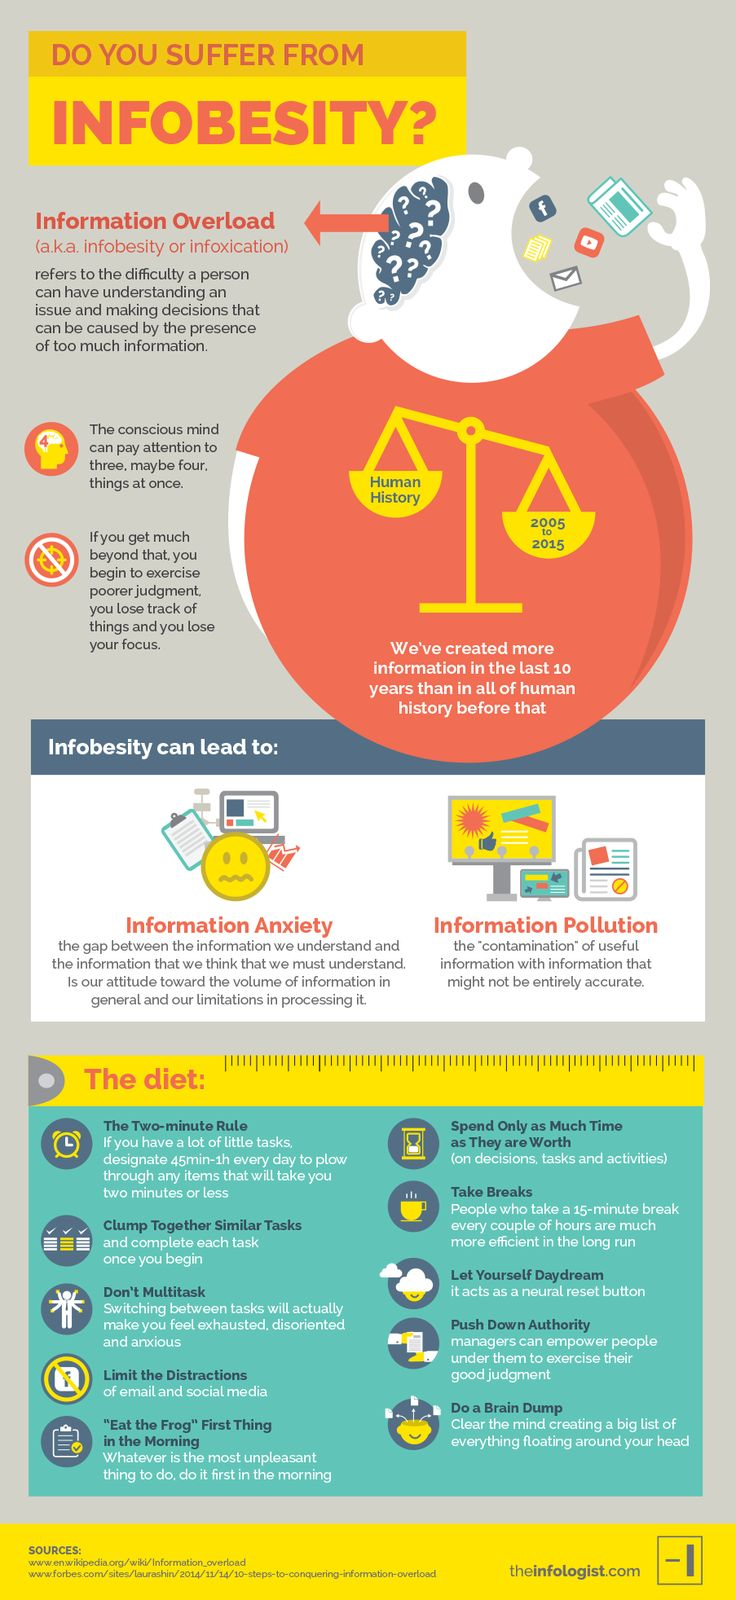 Do You Suffer From Infobesity? #Infographic #MentalHealth #Health